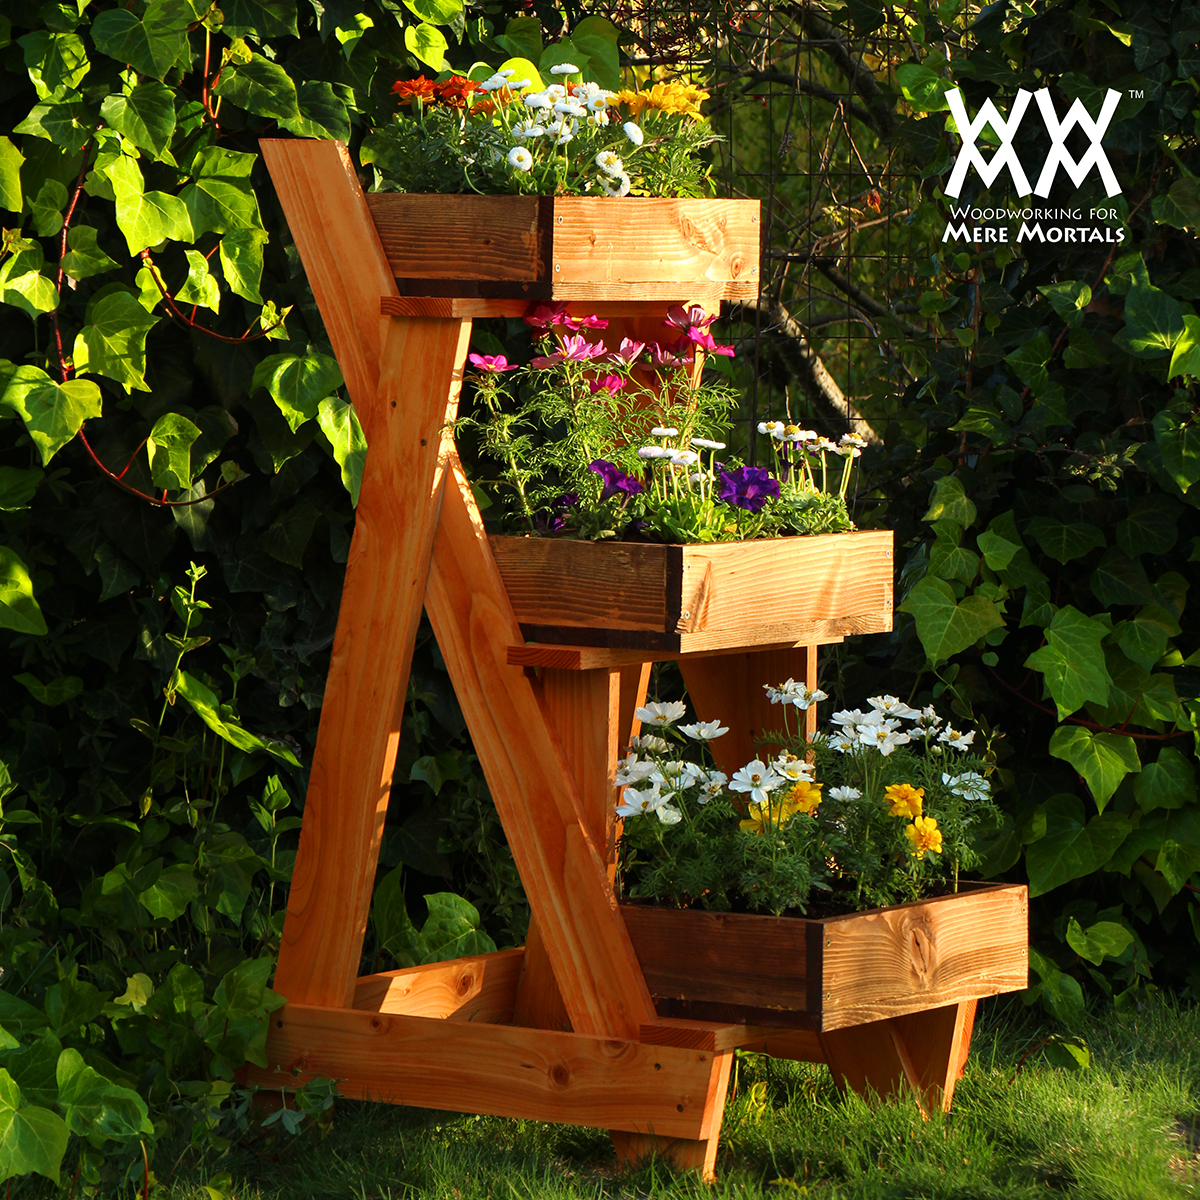 How To Make A Wood Pallet Planter?